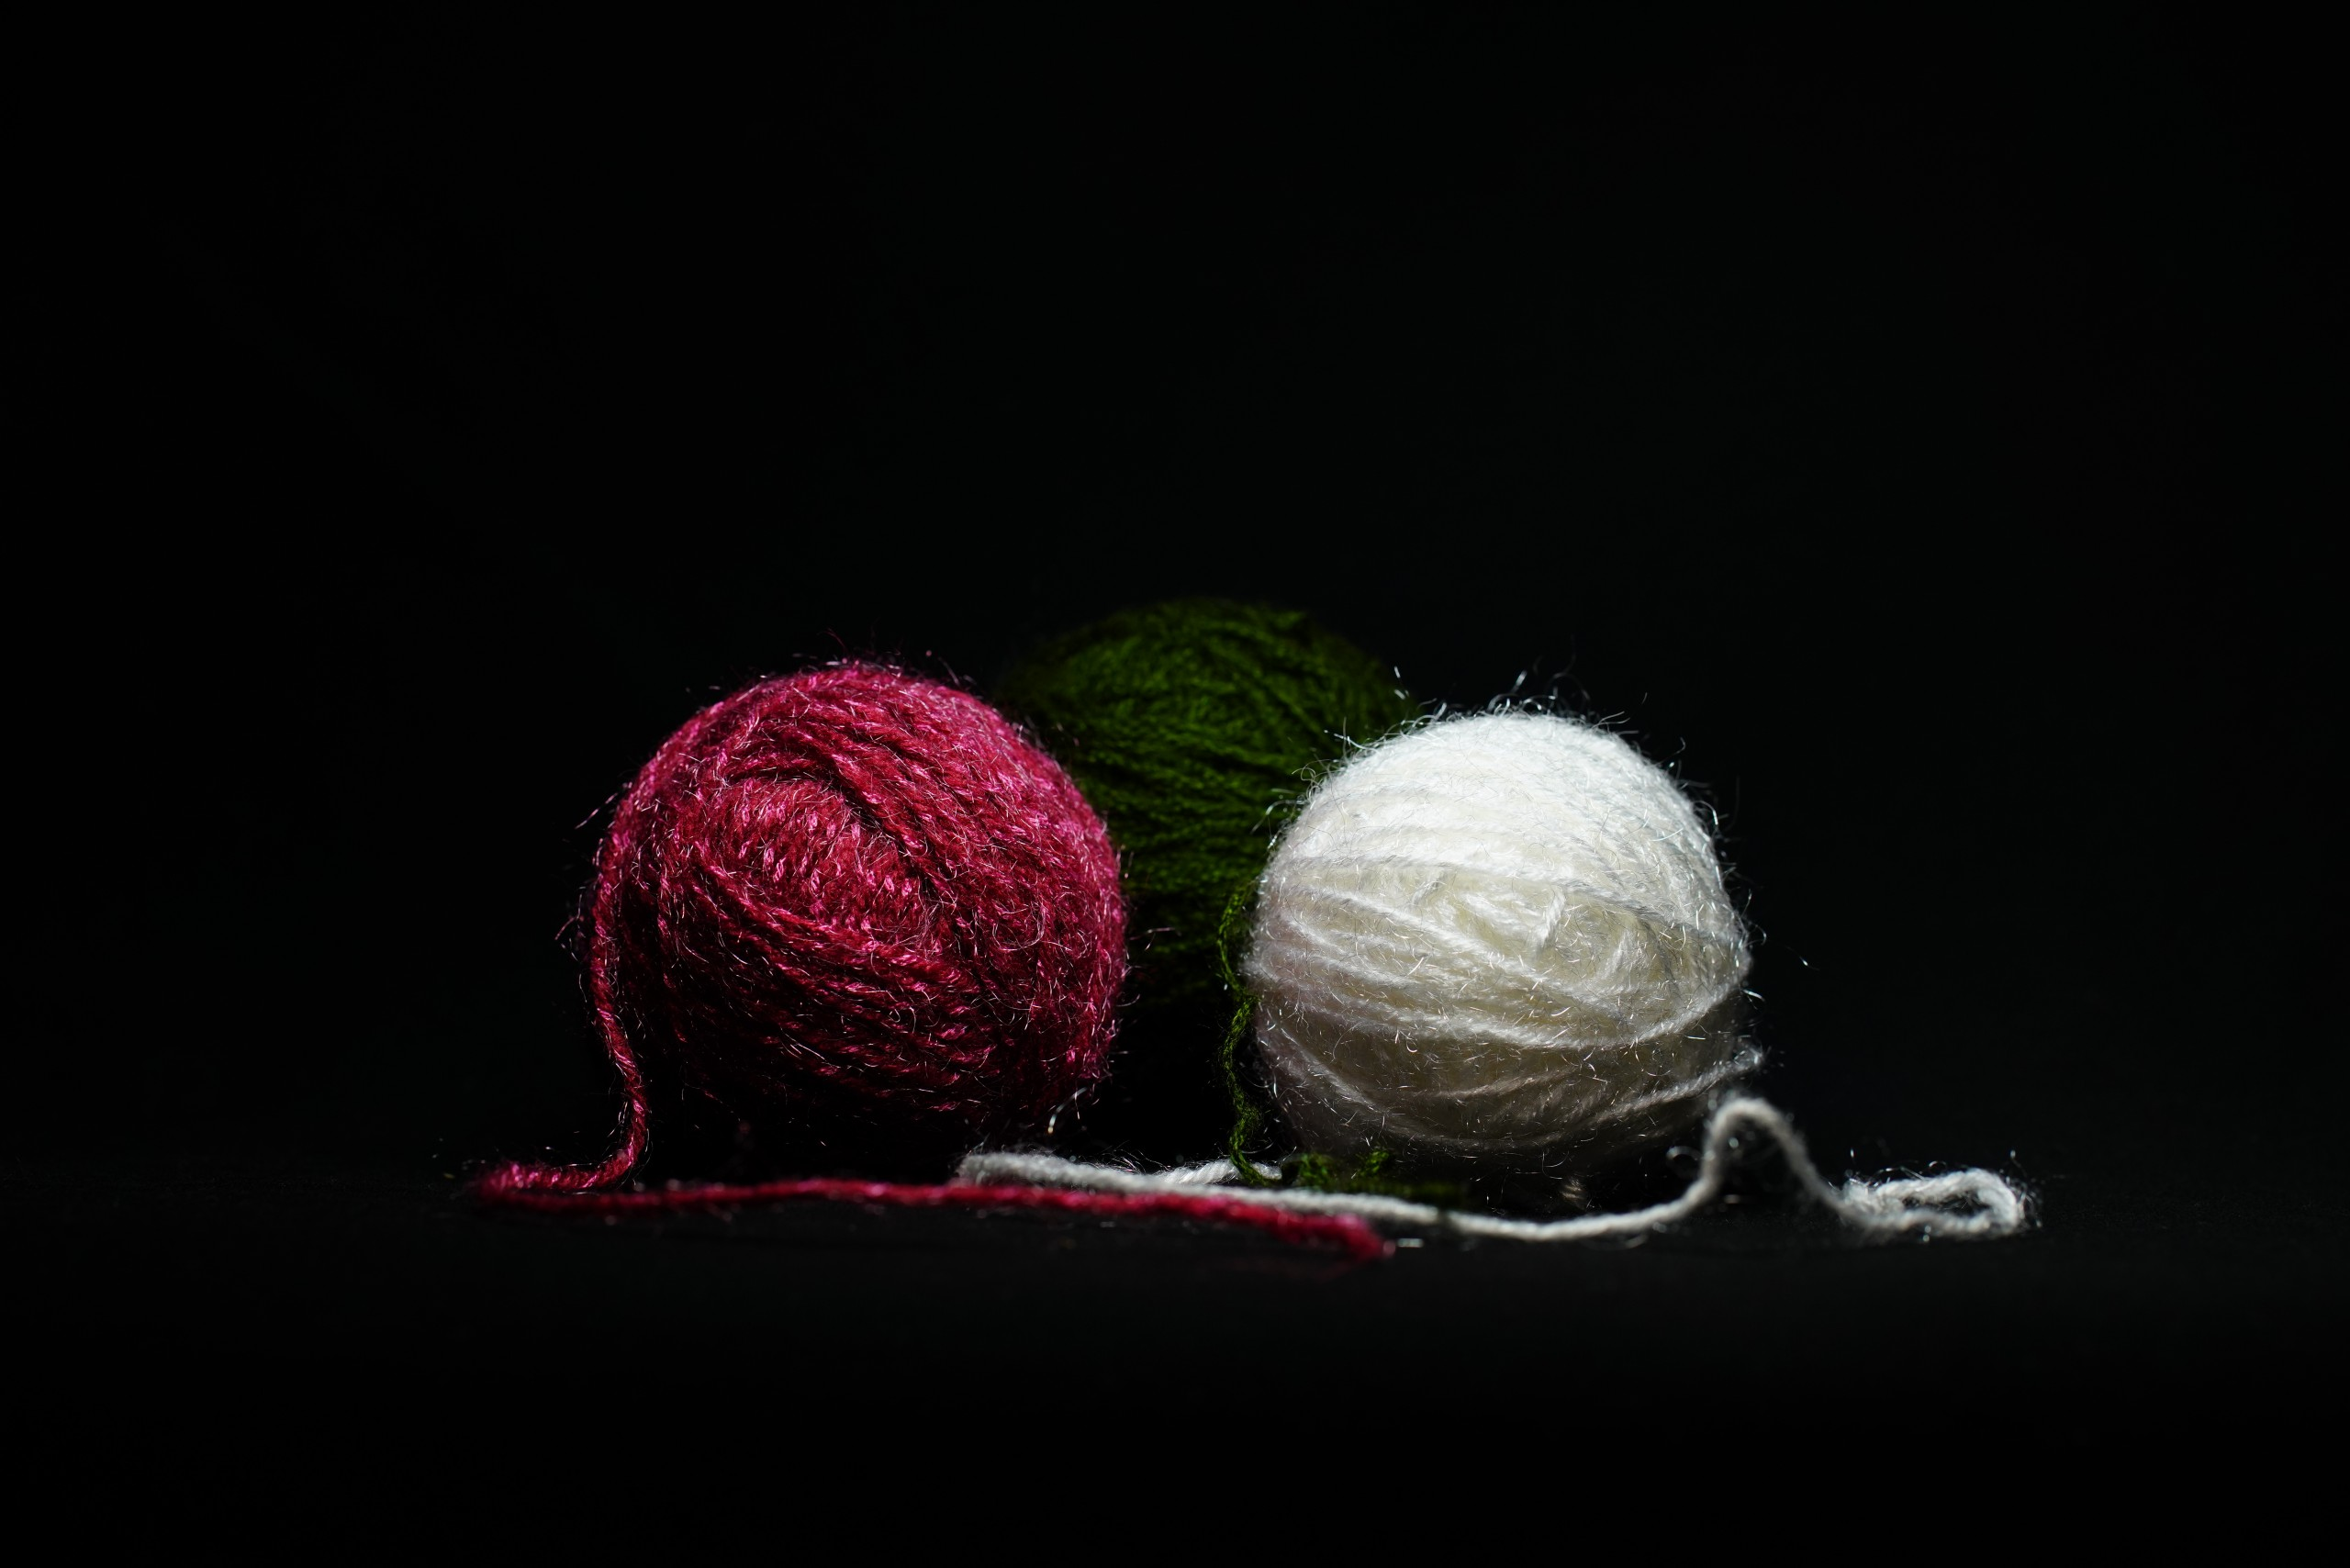 Yarns in black background